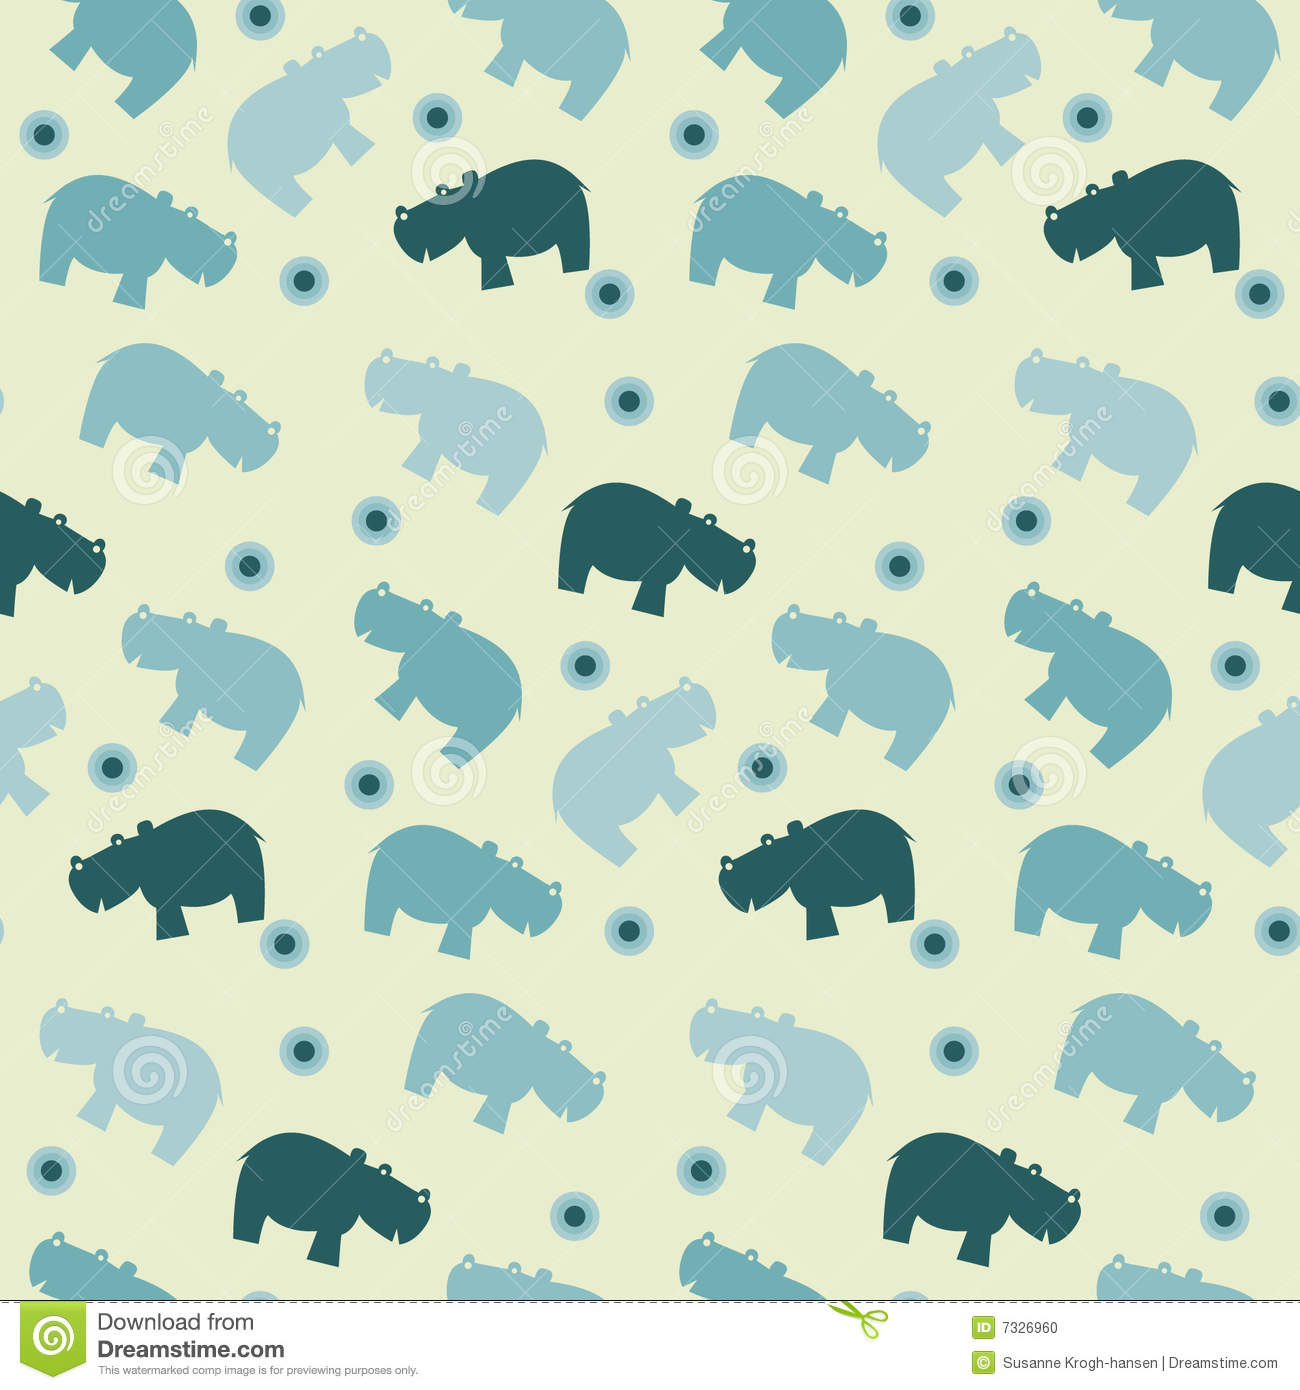 More similar stock images of ` Simple seamless hippo papttern `